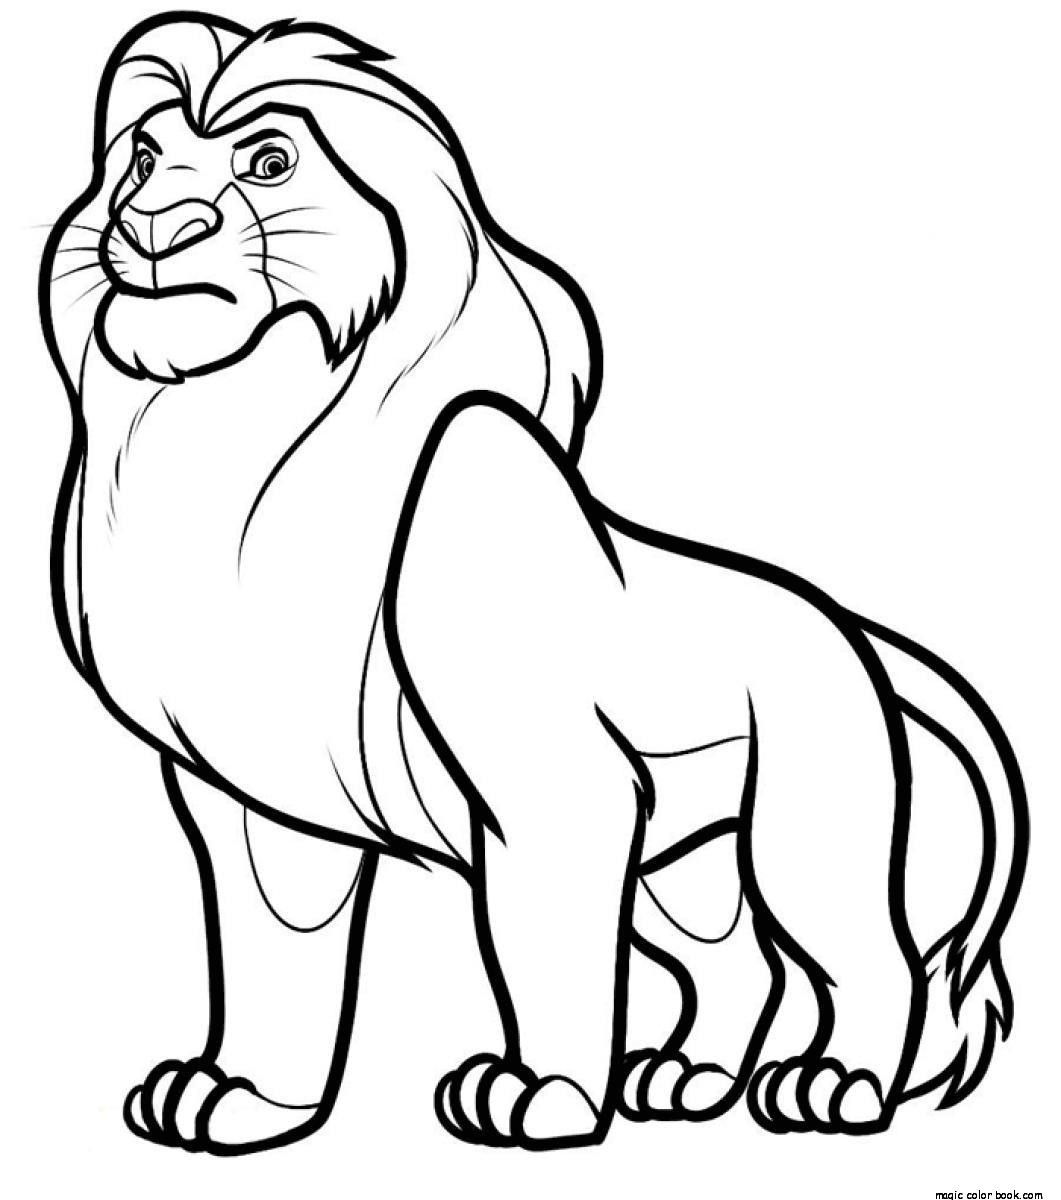 1061x1200 Lion Coloring Page Inspirational Lion Cartoon Colouring Pages